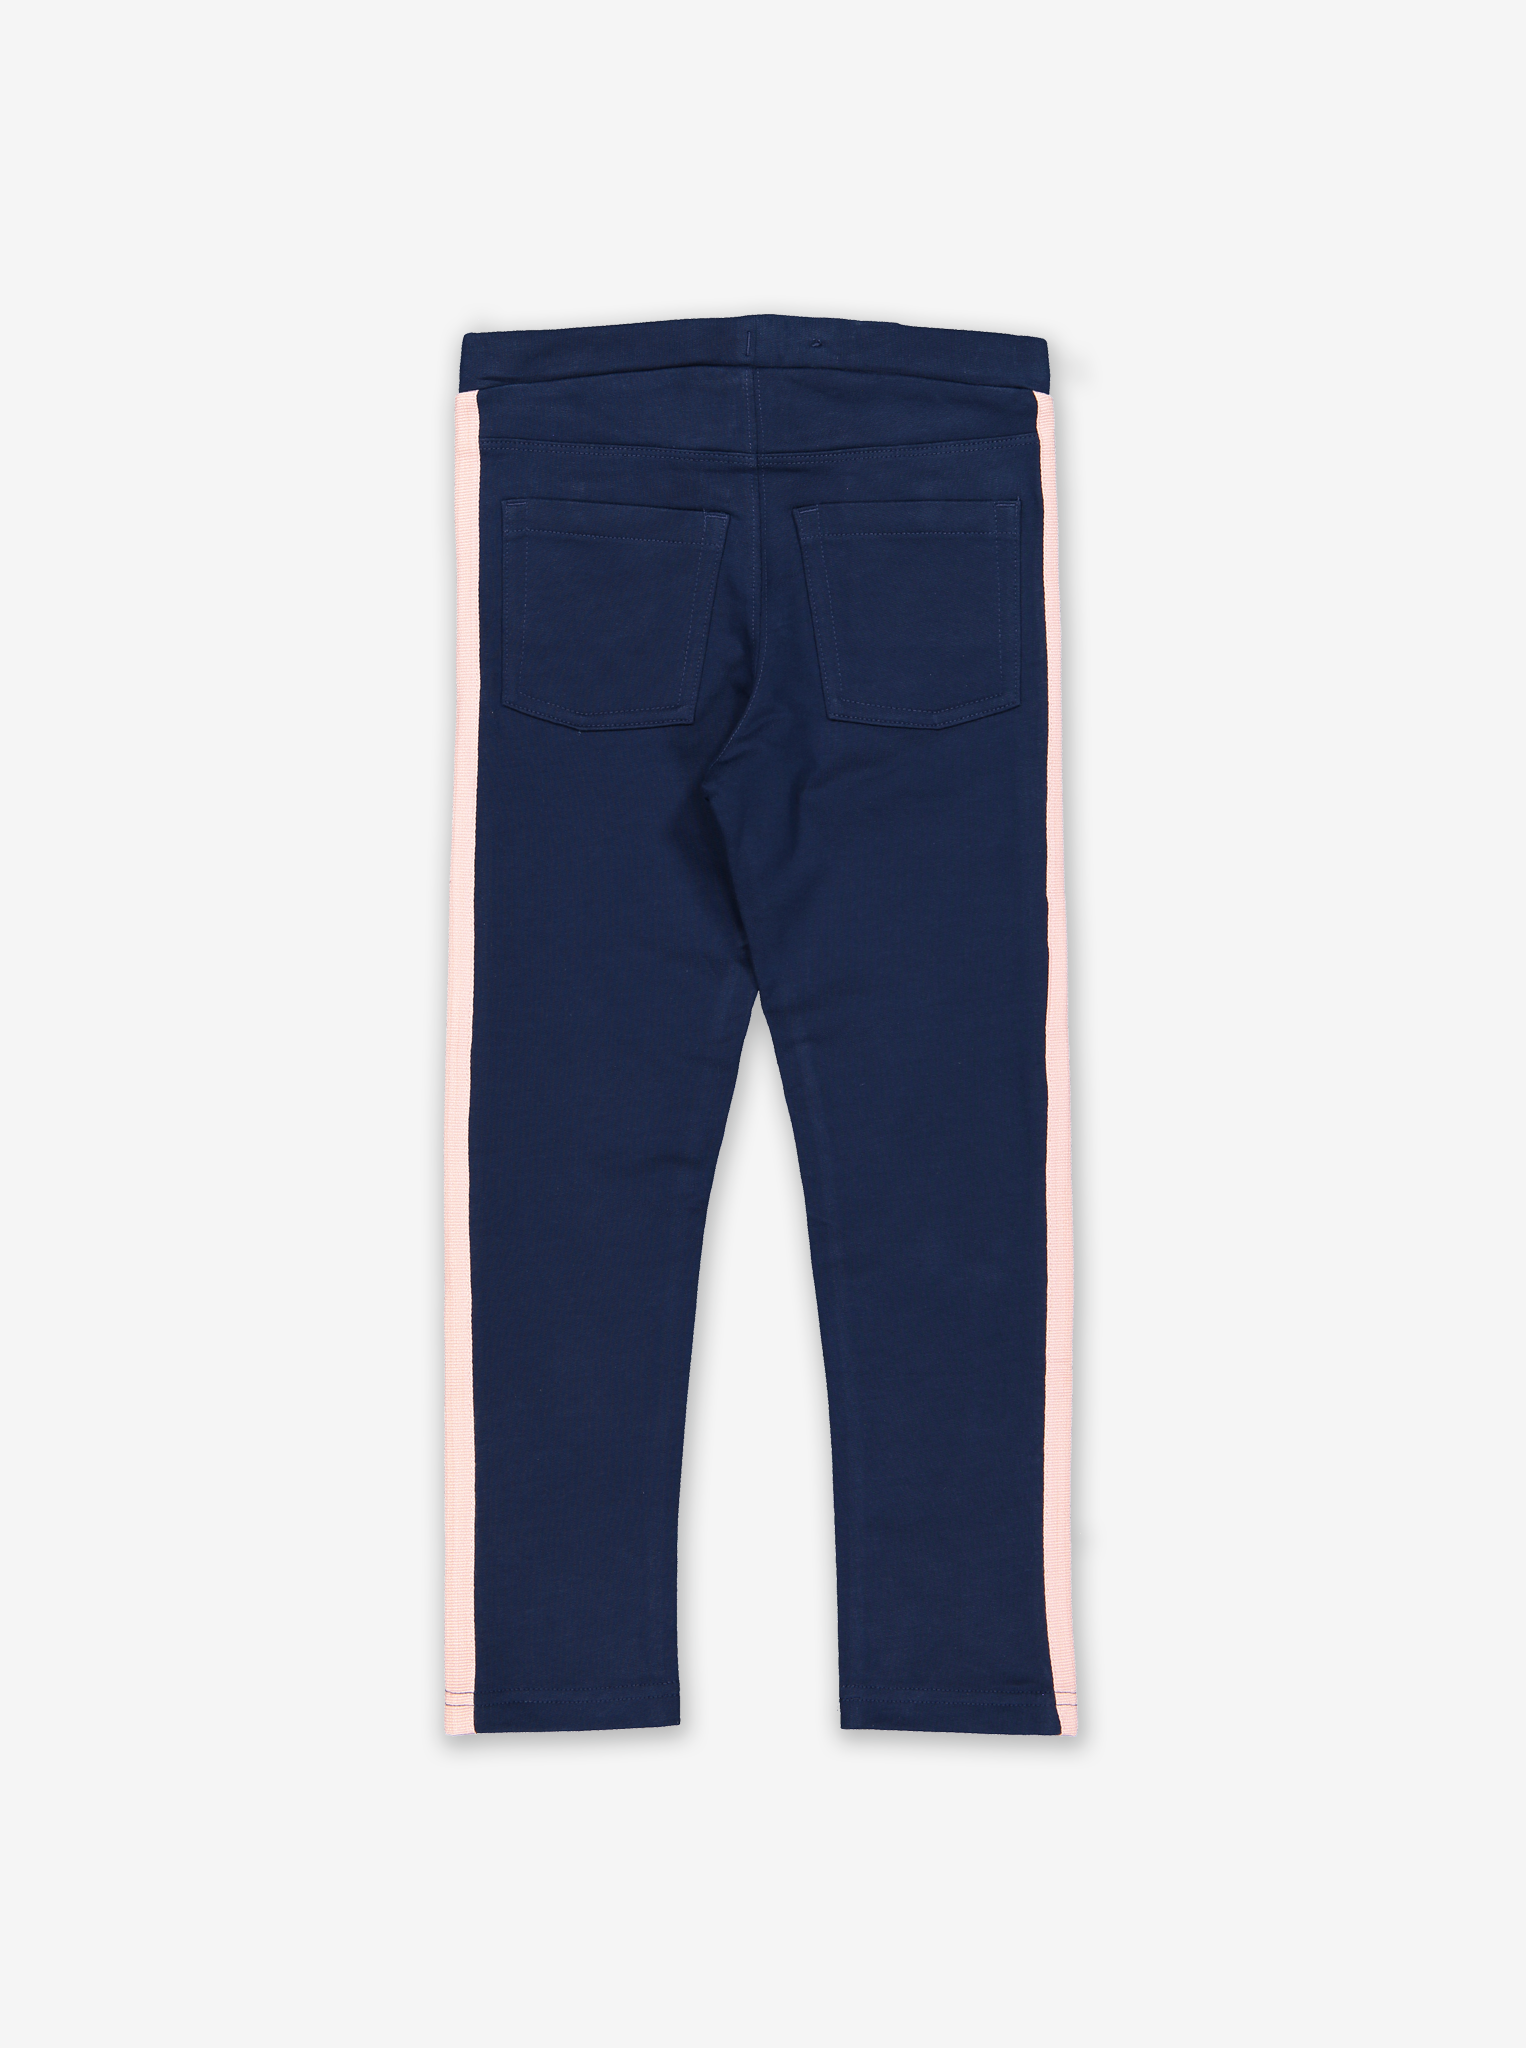 Pockets Kids Slim Track Pants-Girl-1-6y-Blue